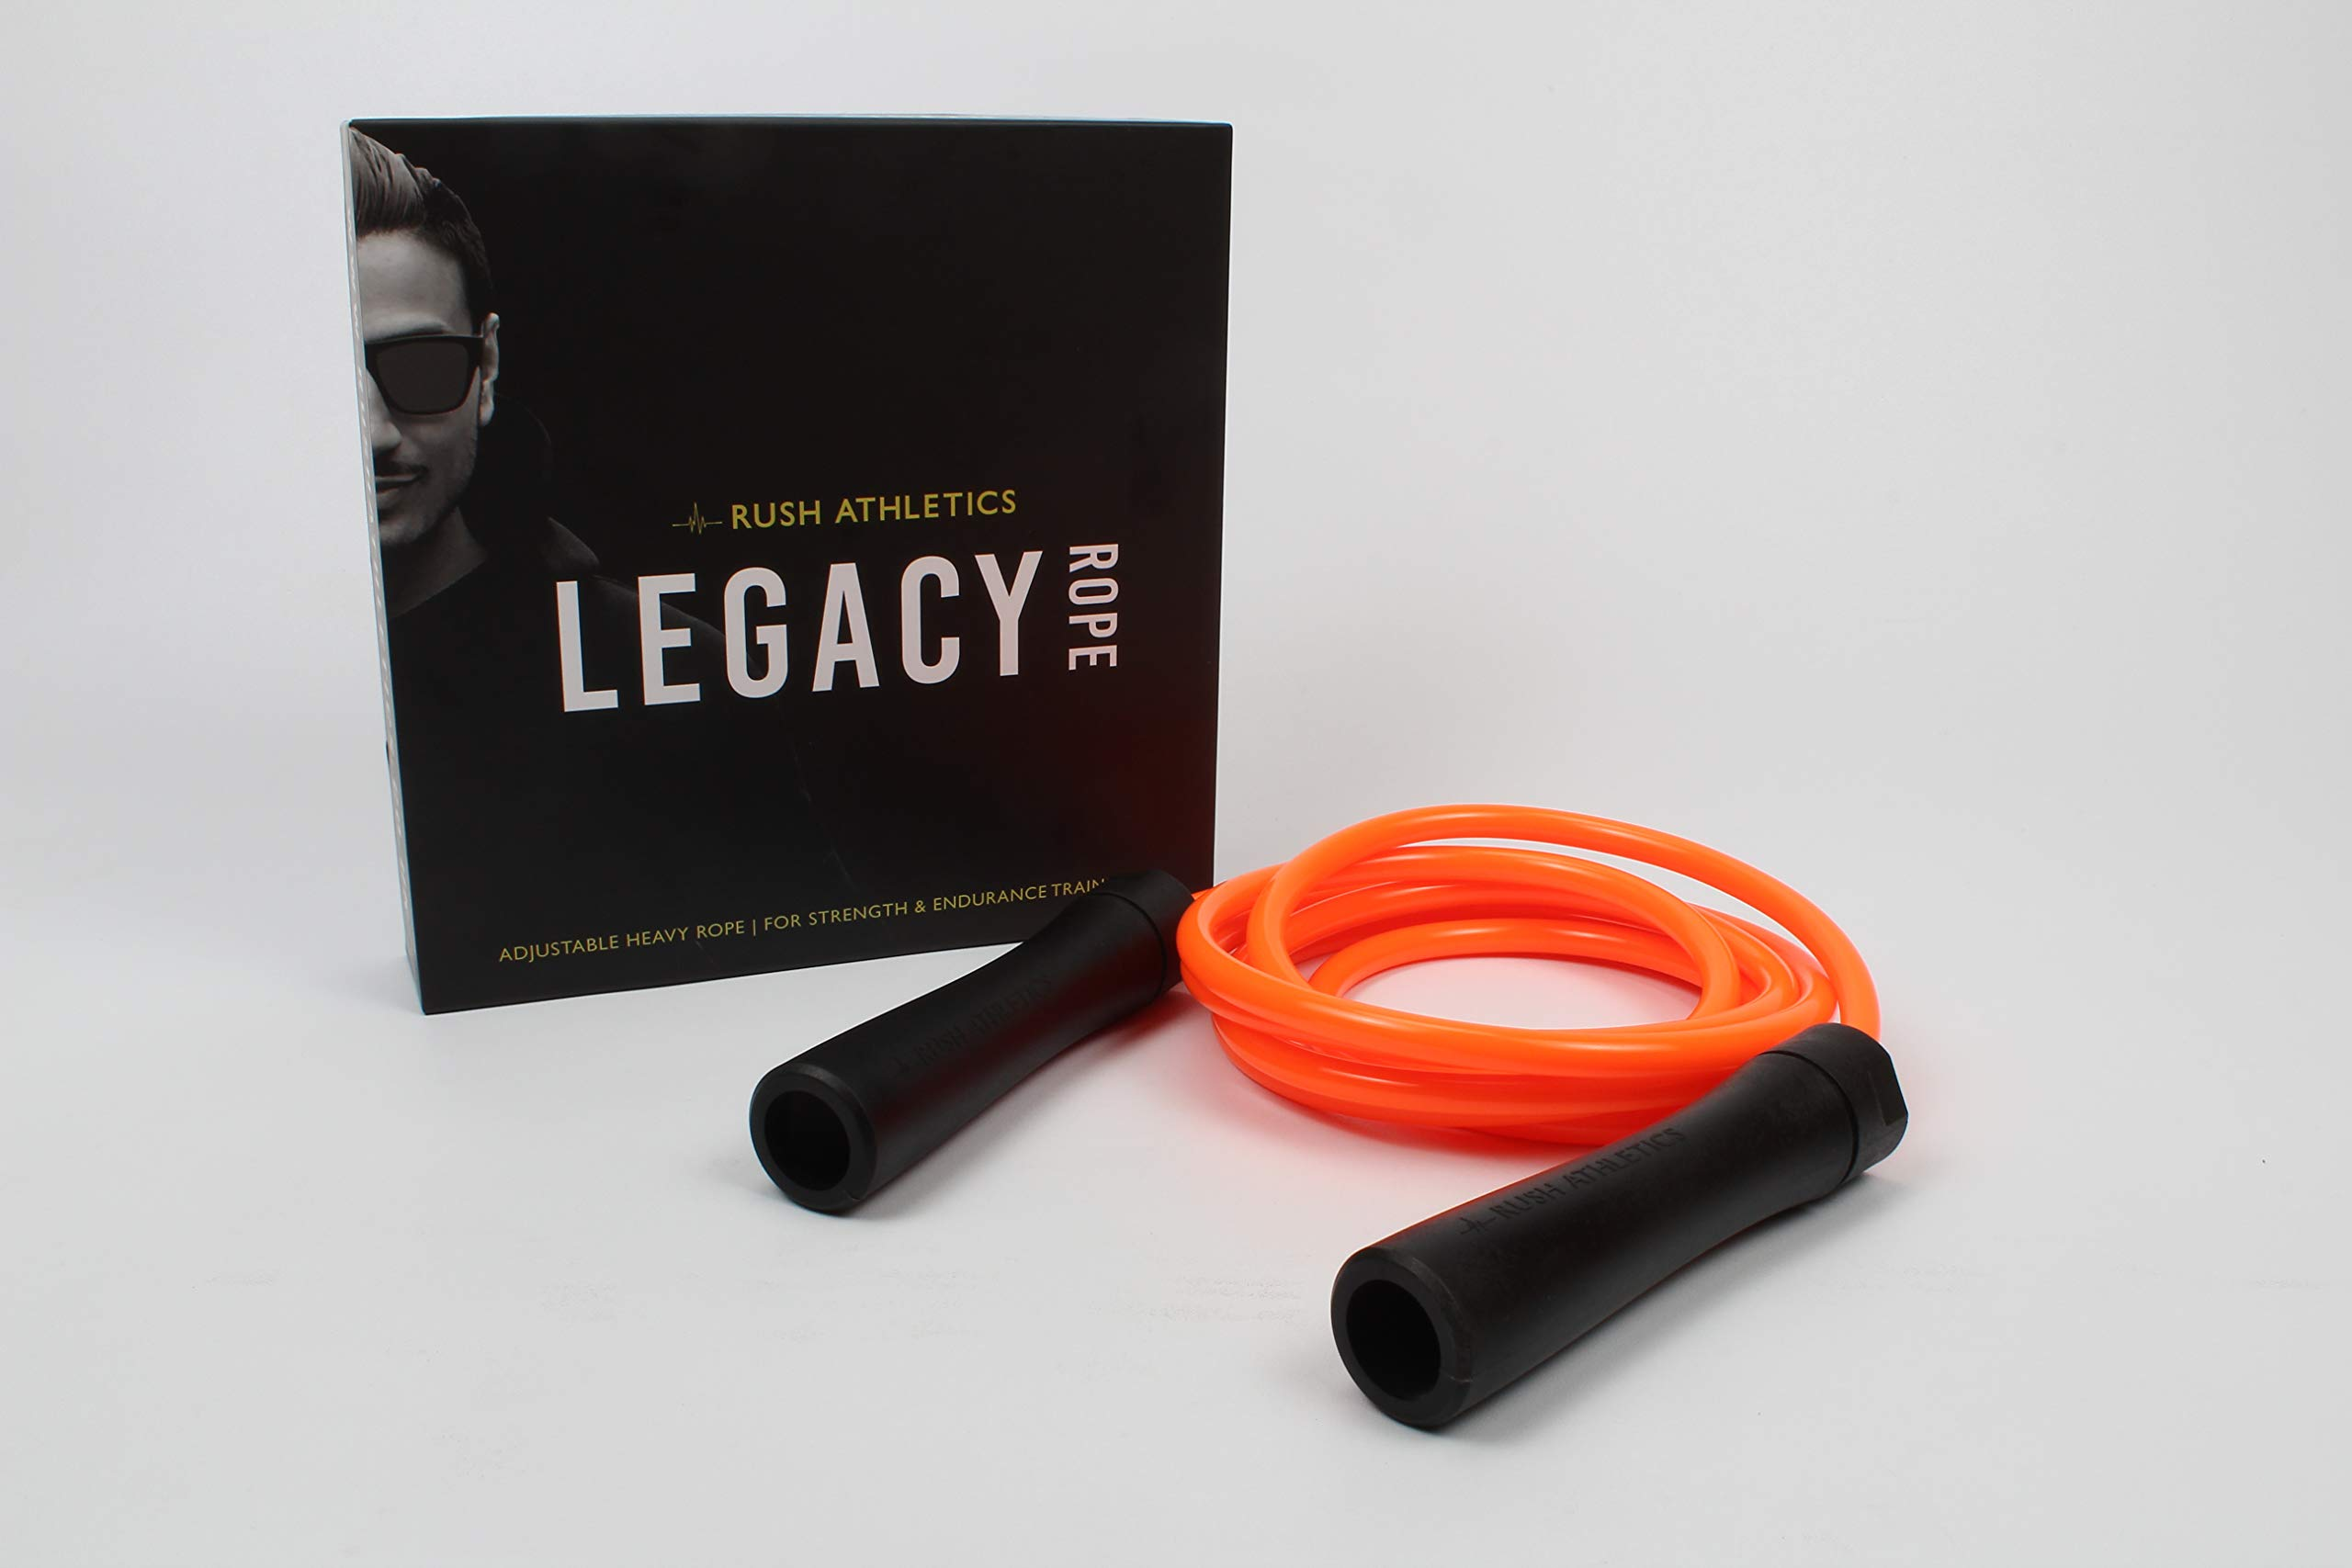 RUSH ATHLETICS Legacy Weighted Jump Rope Orange - Best for Weight Loss Fitness Training - Strength Power - Adjustable 11ft Heavy Jump Rope